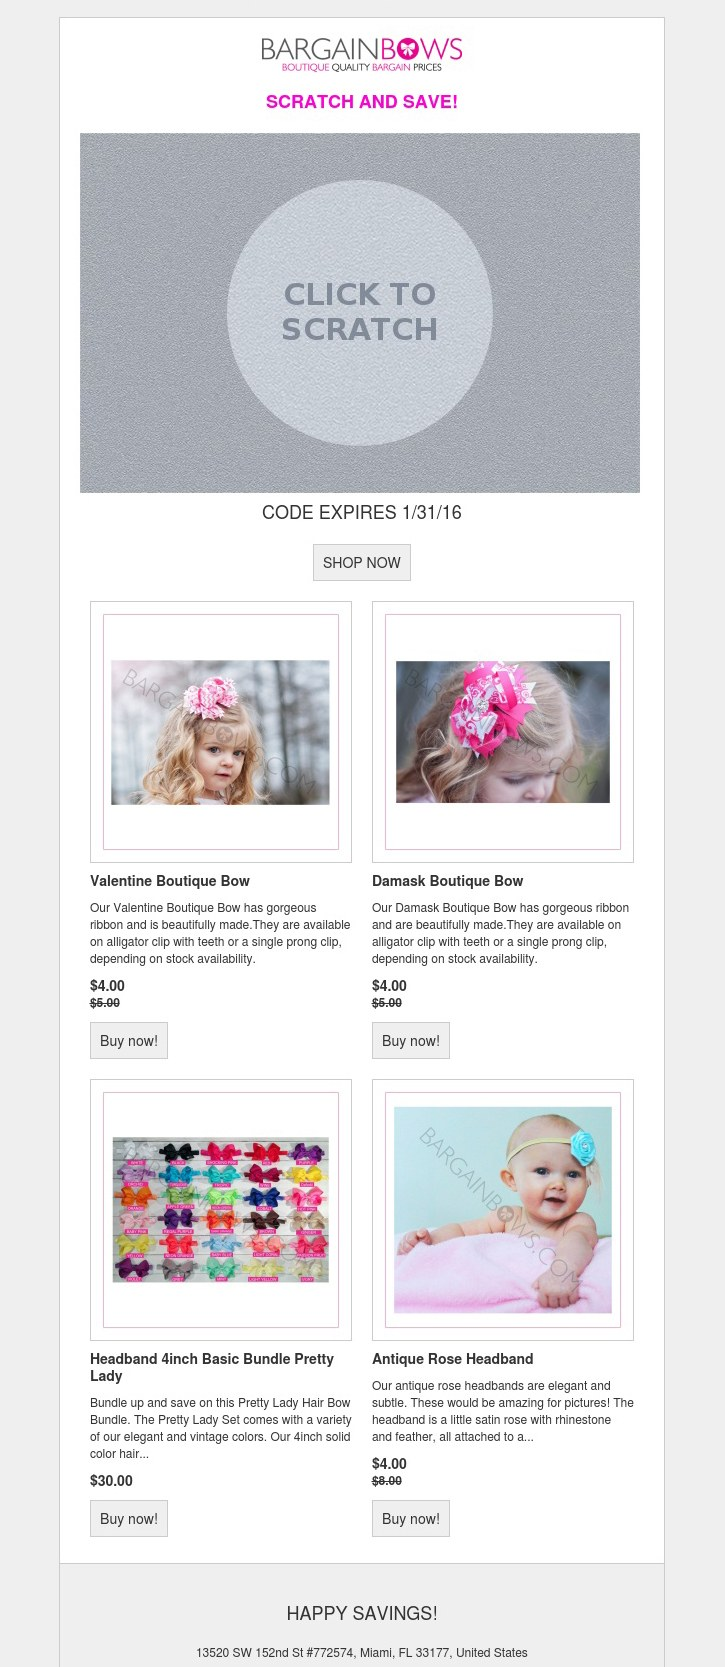 10 Ecommerce Newsletter Examples For Your Next Email Campaign